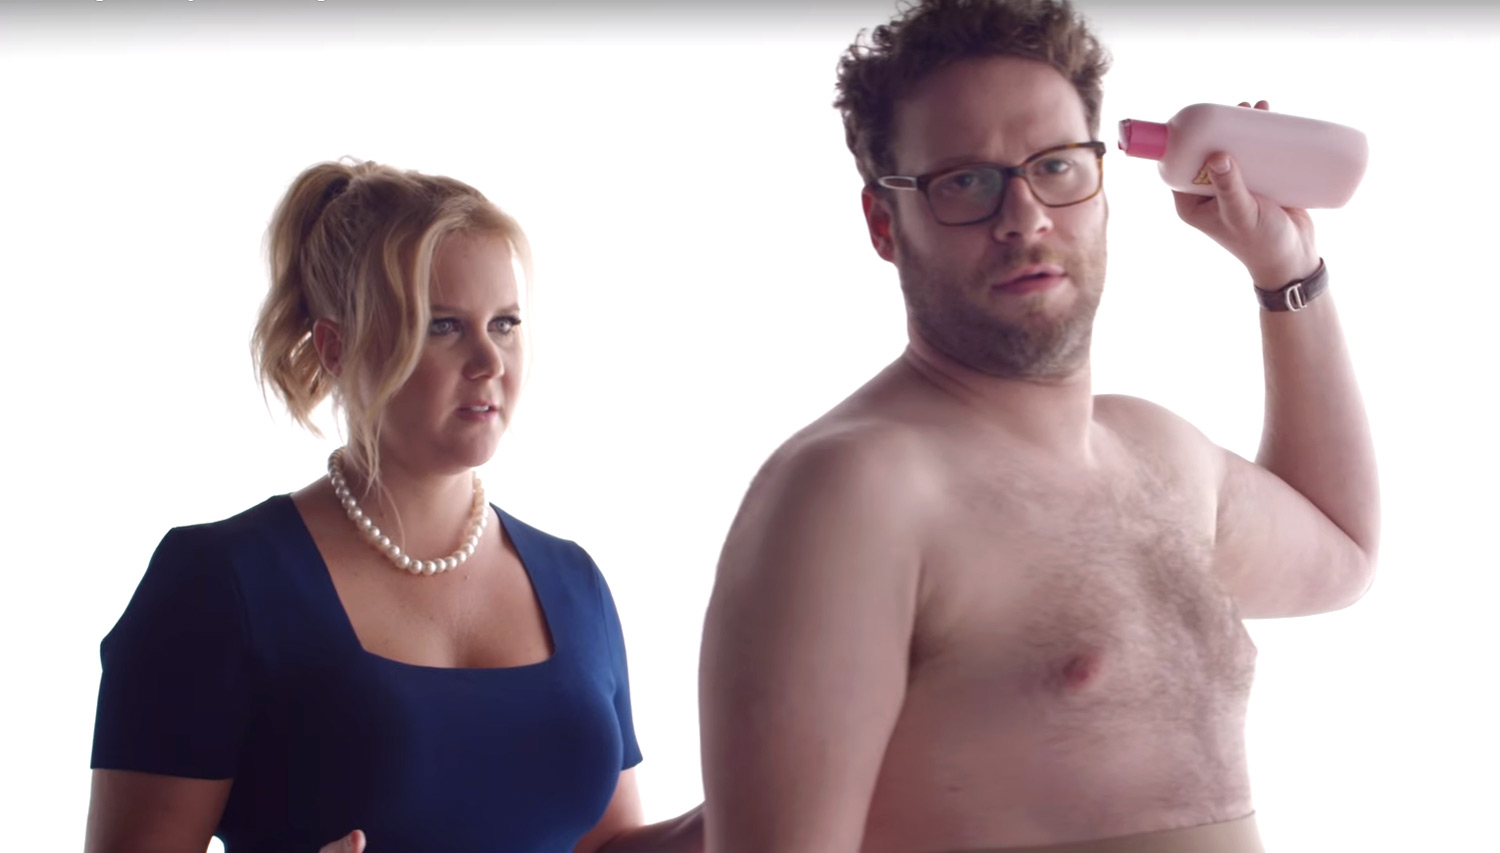 Amy schumer seth rogen tease their bud light super bowl ad amy amy schumer seth rogen tease their bud light super bowl ad amy schumer seth rogen just jared aloadofball Gallery